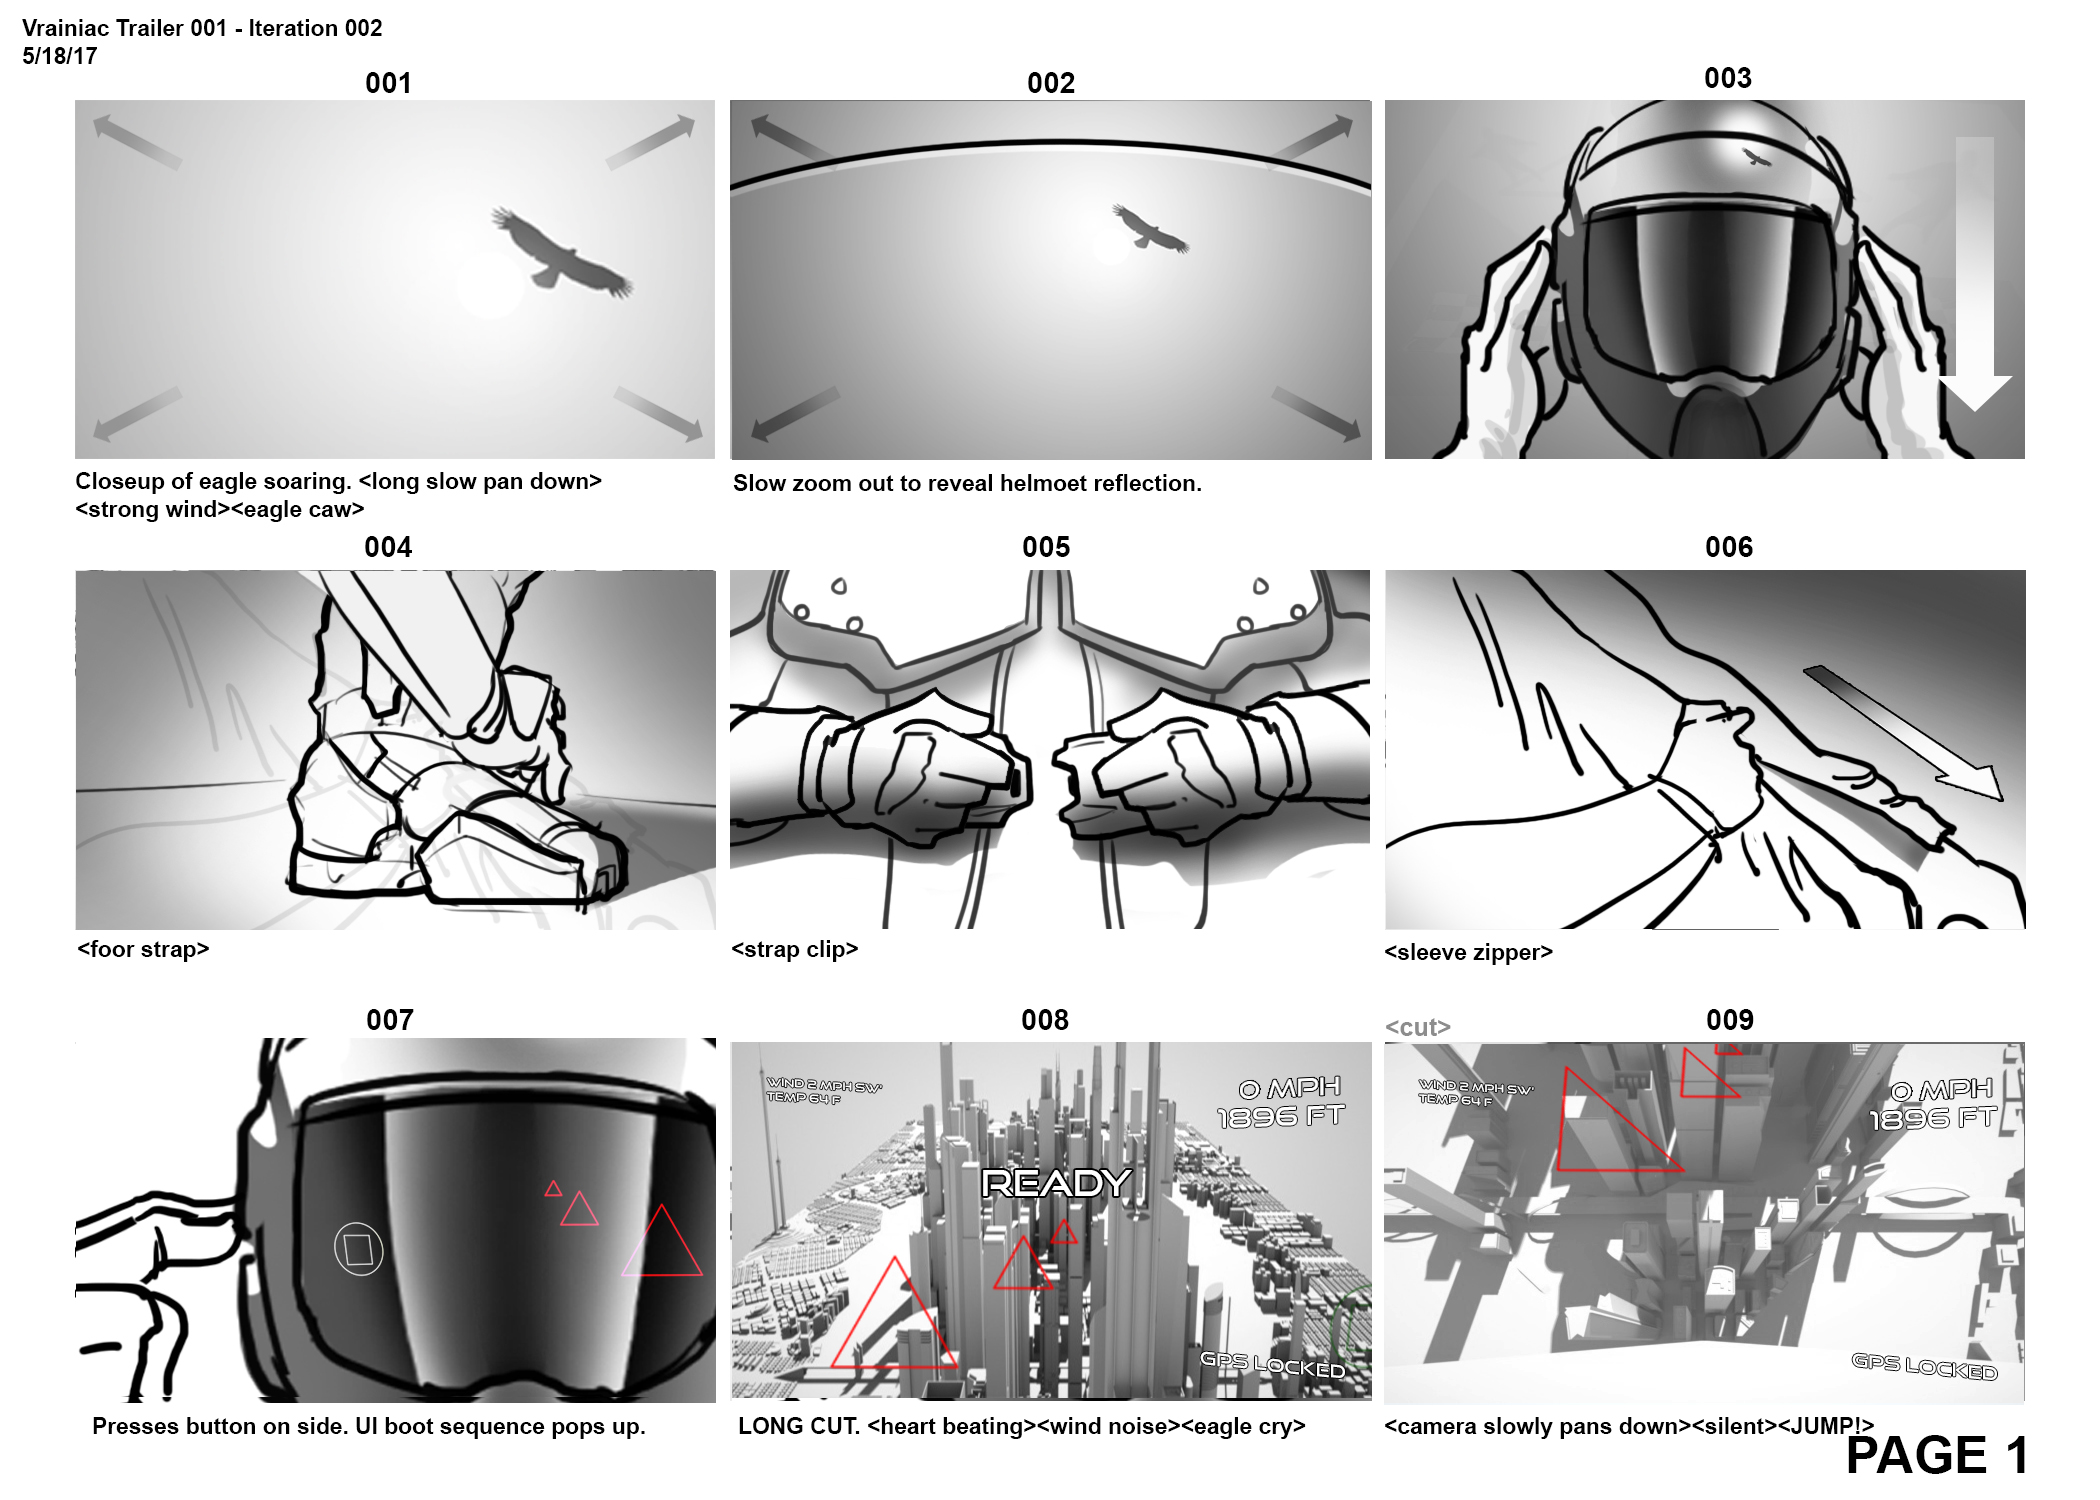 storyboard_thumbs_02_page01